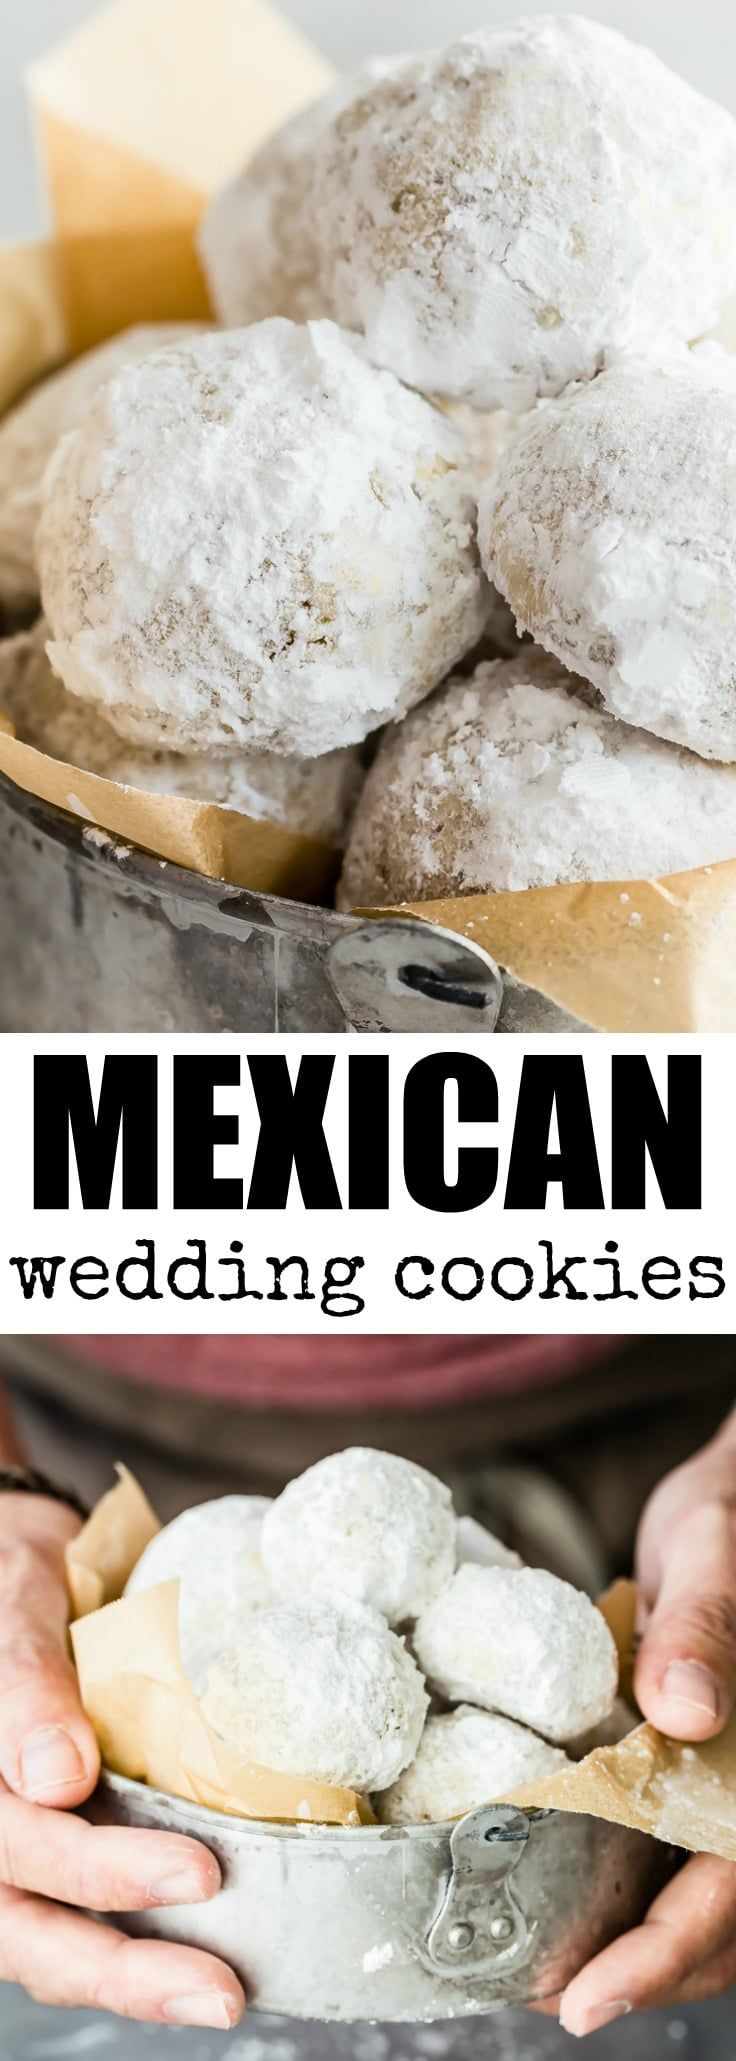 mexican wedding cakes with walnuts best 25 wedding cookies ideas on wedding 17324